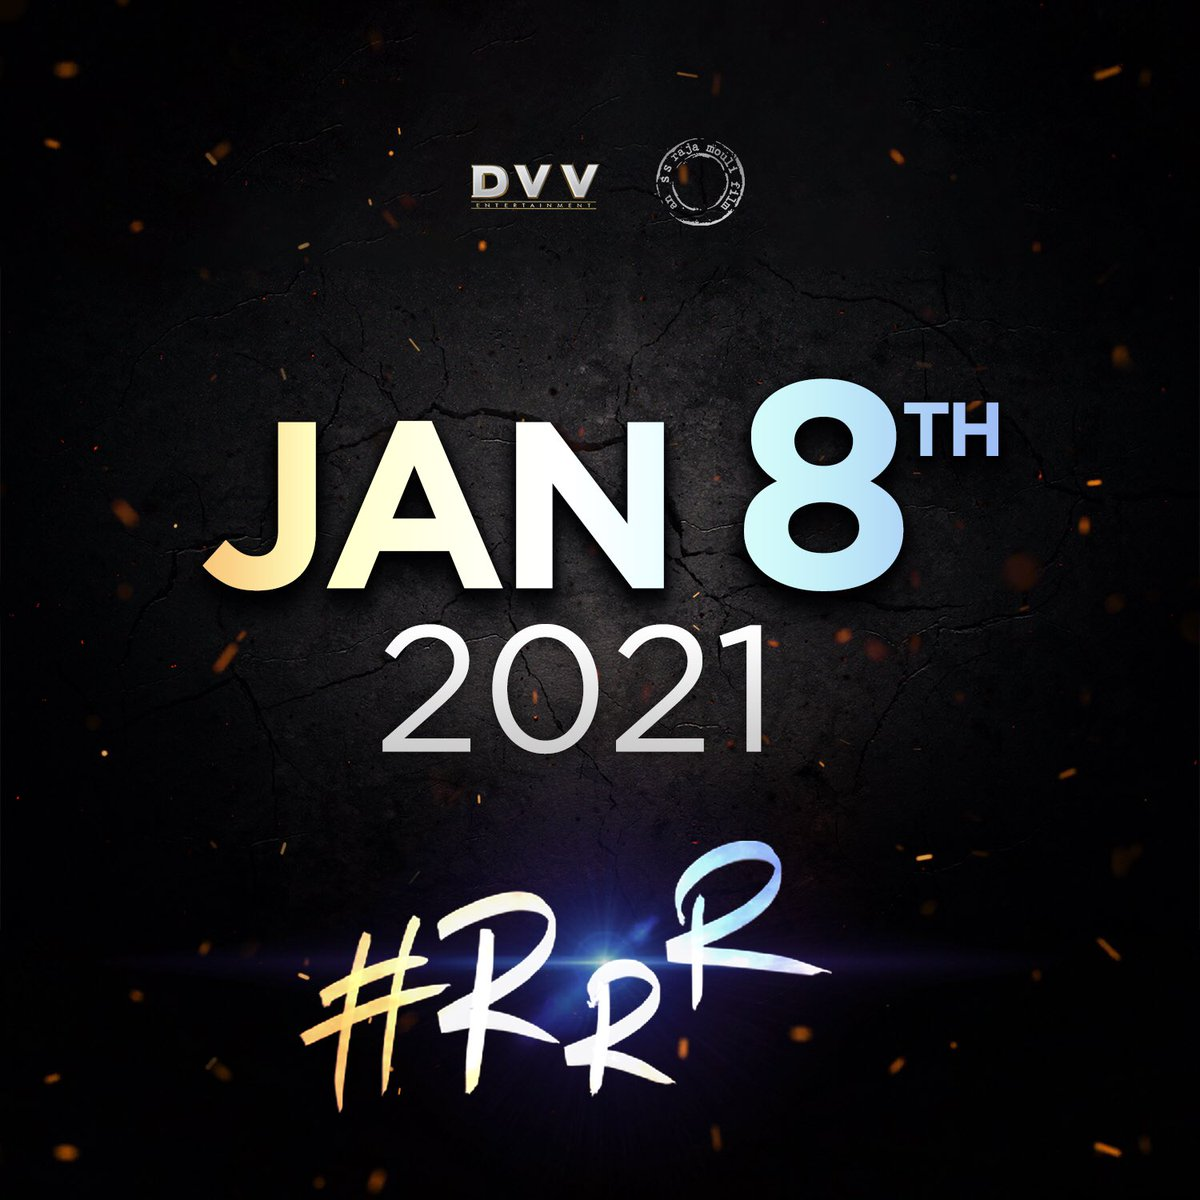 #RRR will hit the screens on January 8th, 2021! We know the wait is long but we promise to keep giving you updates in the meanwhile. #RRROnJan8th